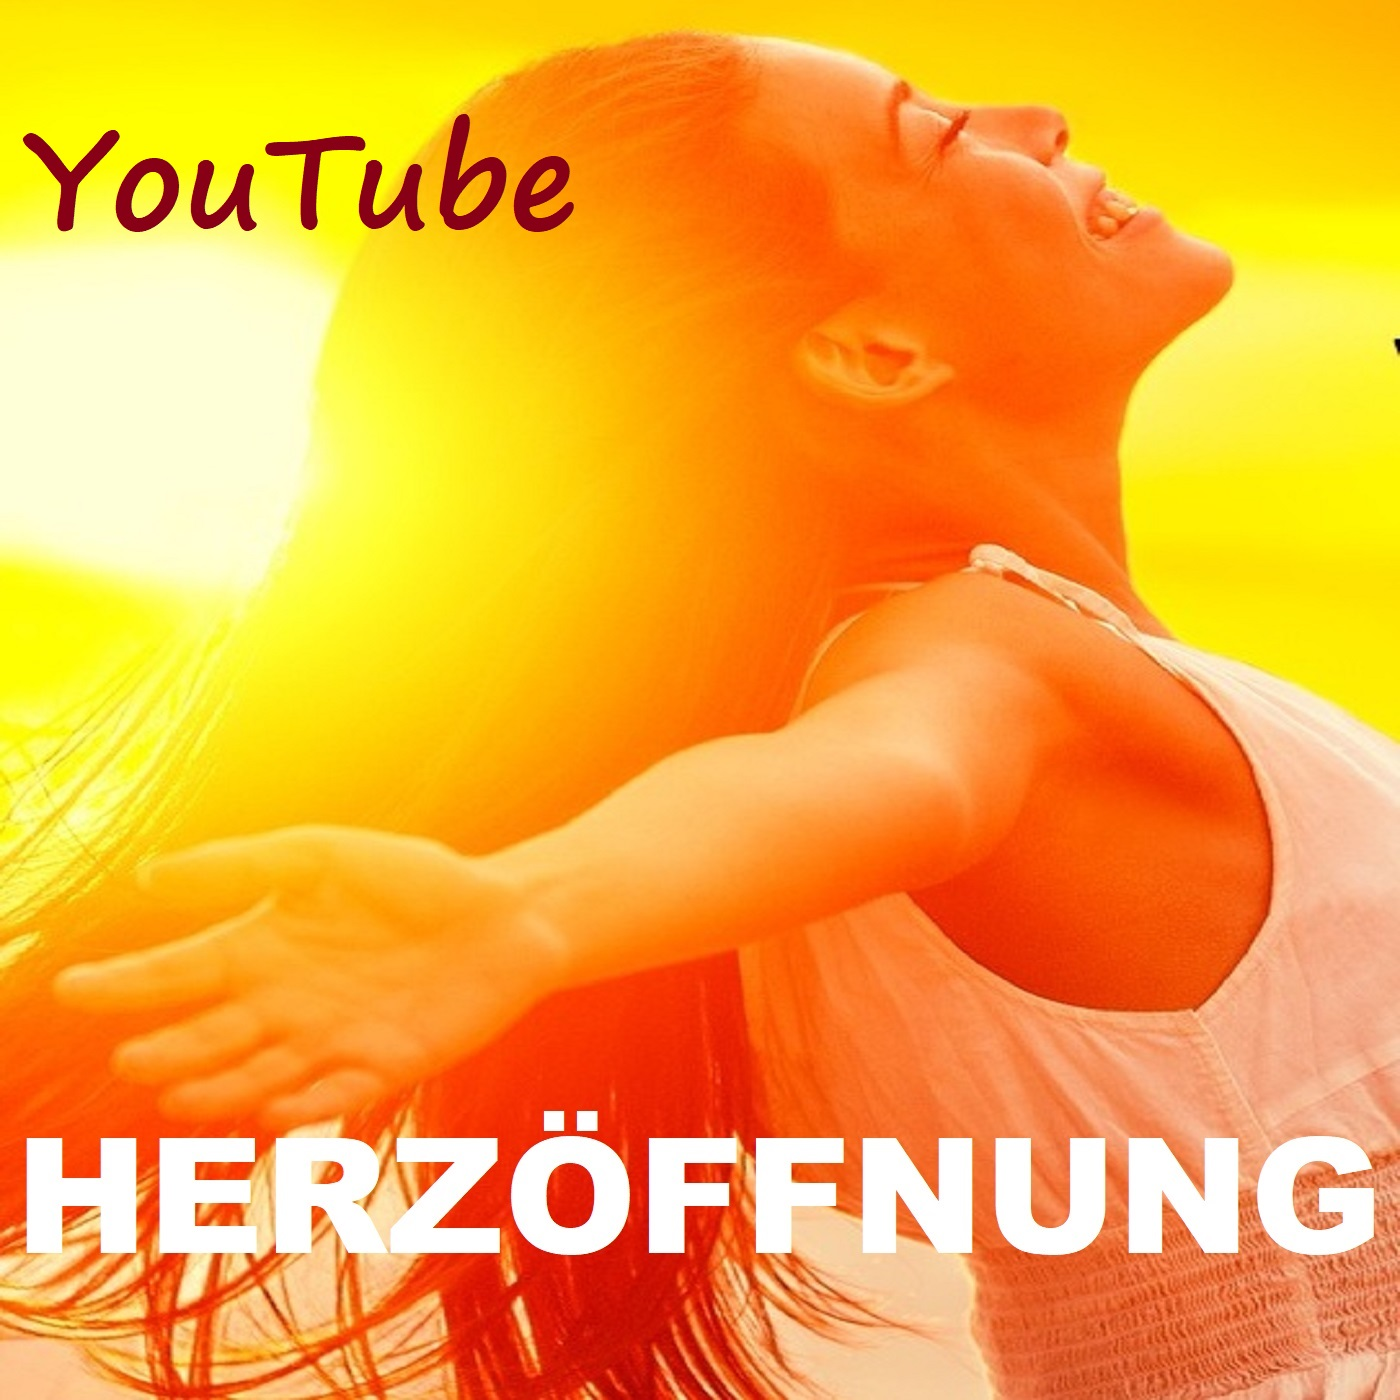 Herzöff.YouTube